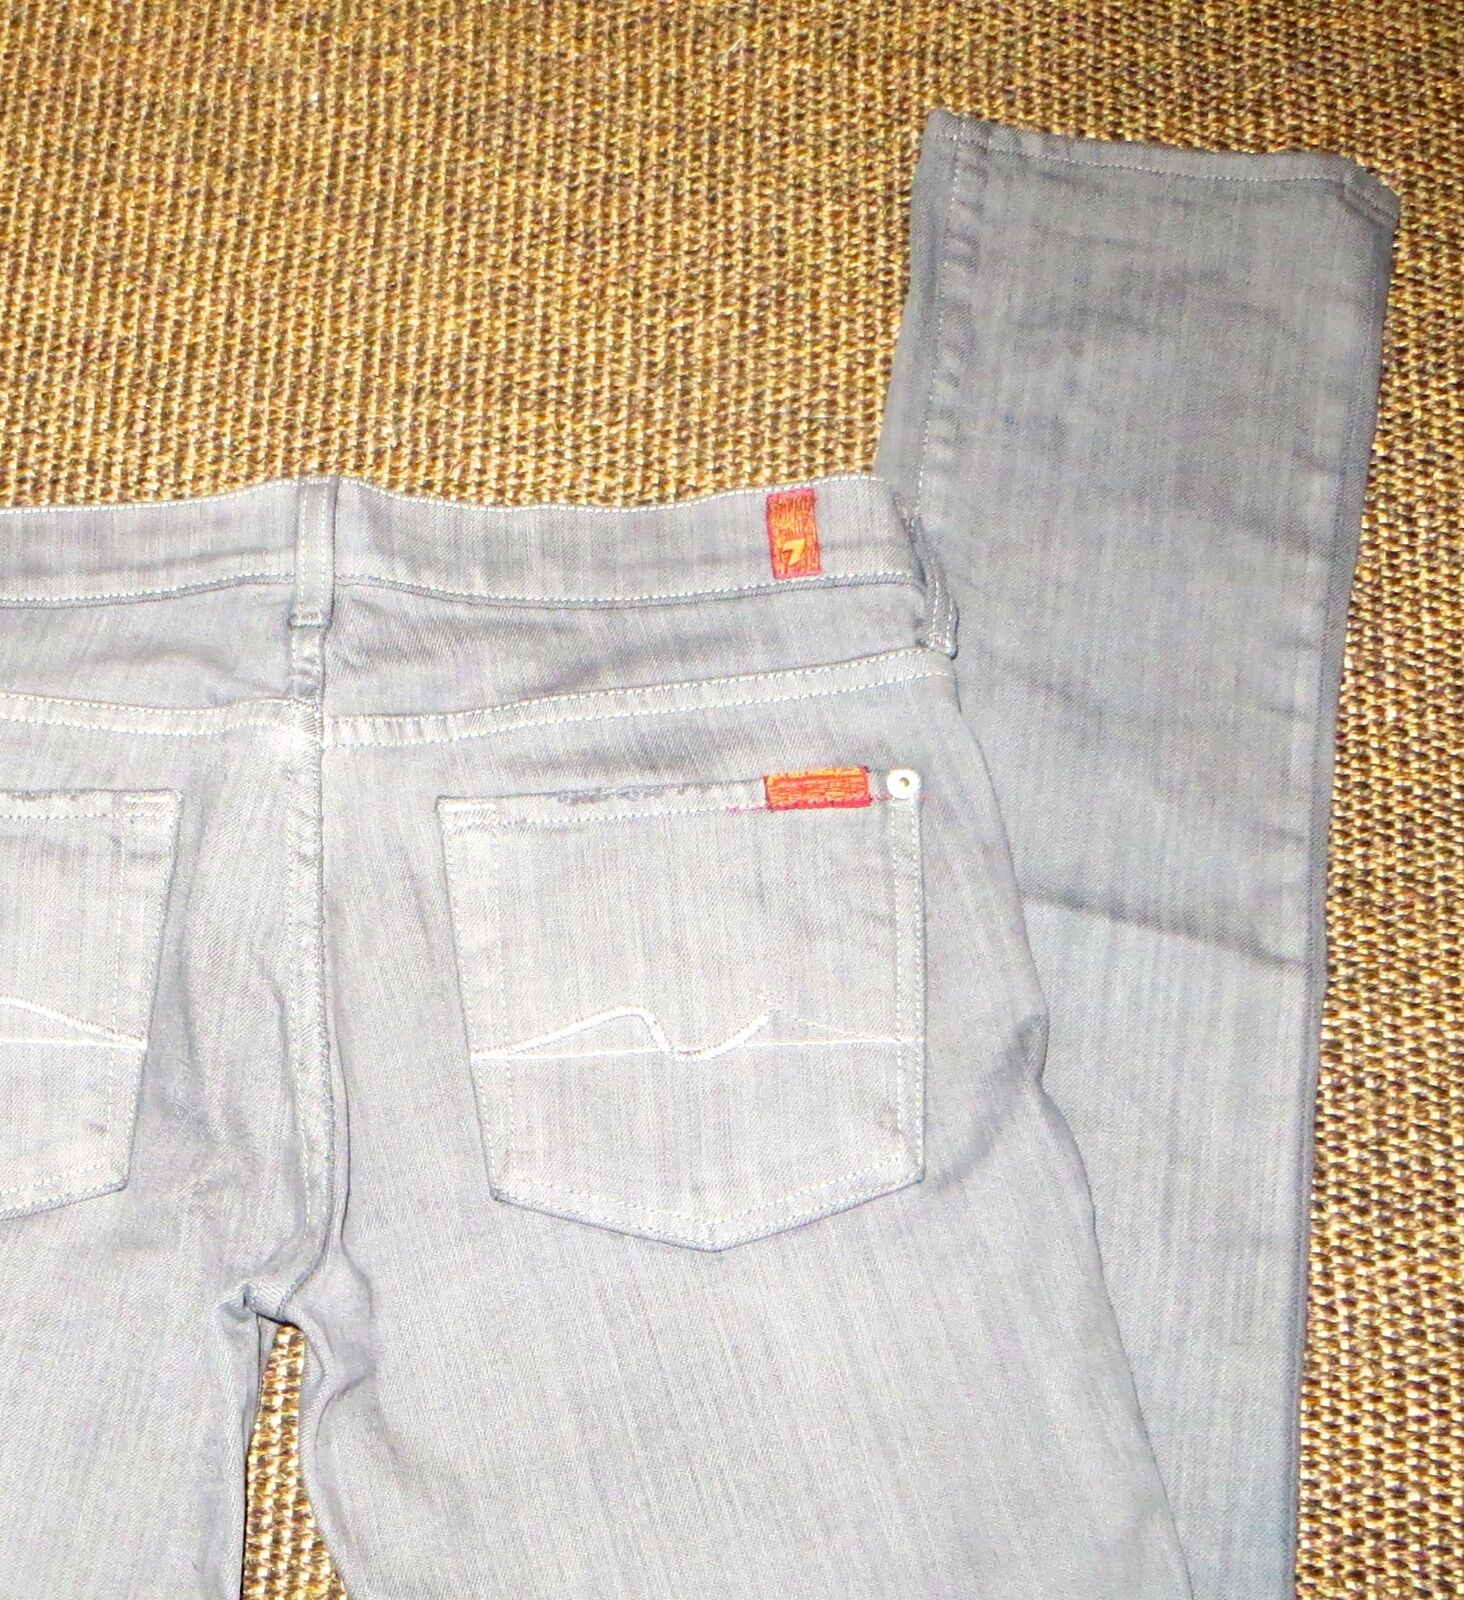 7 FOR ALL MANKIND SKINNY GREY JEANS W28 L34 NET A PORTER